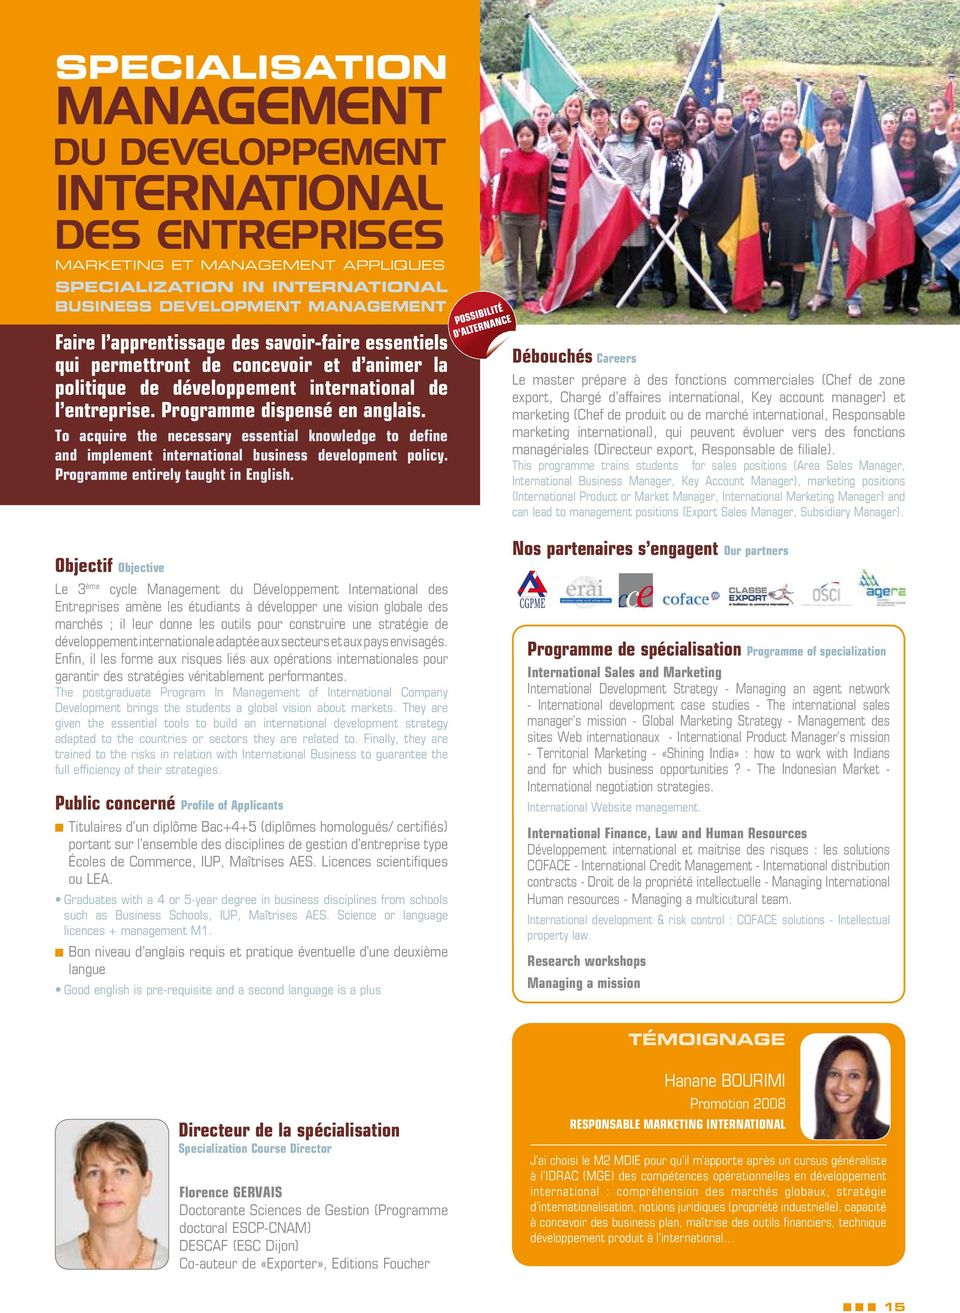 To acquire the necessary essential knowledge to define and implement international business development policy. Programme entirely taught in English.